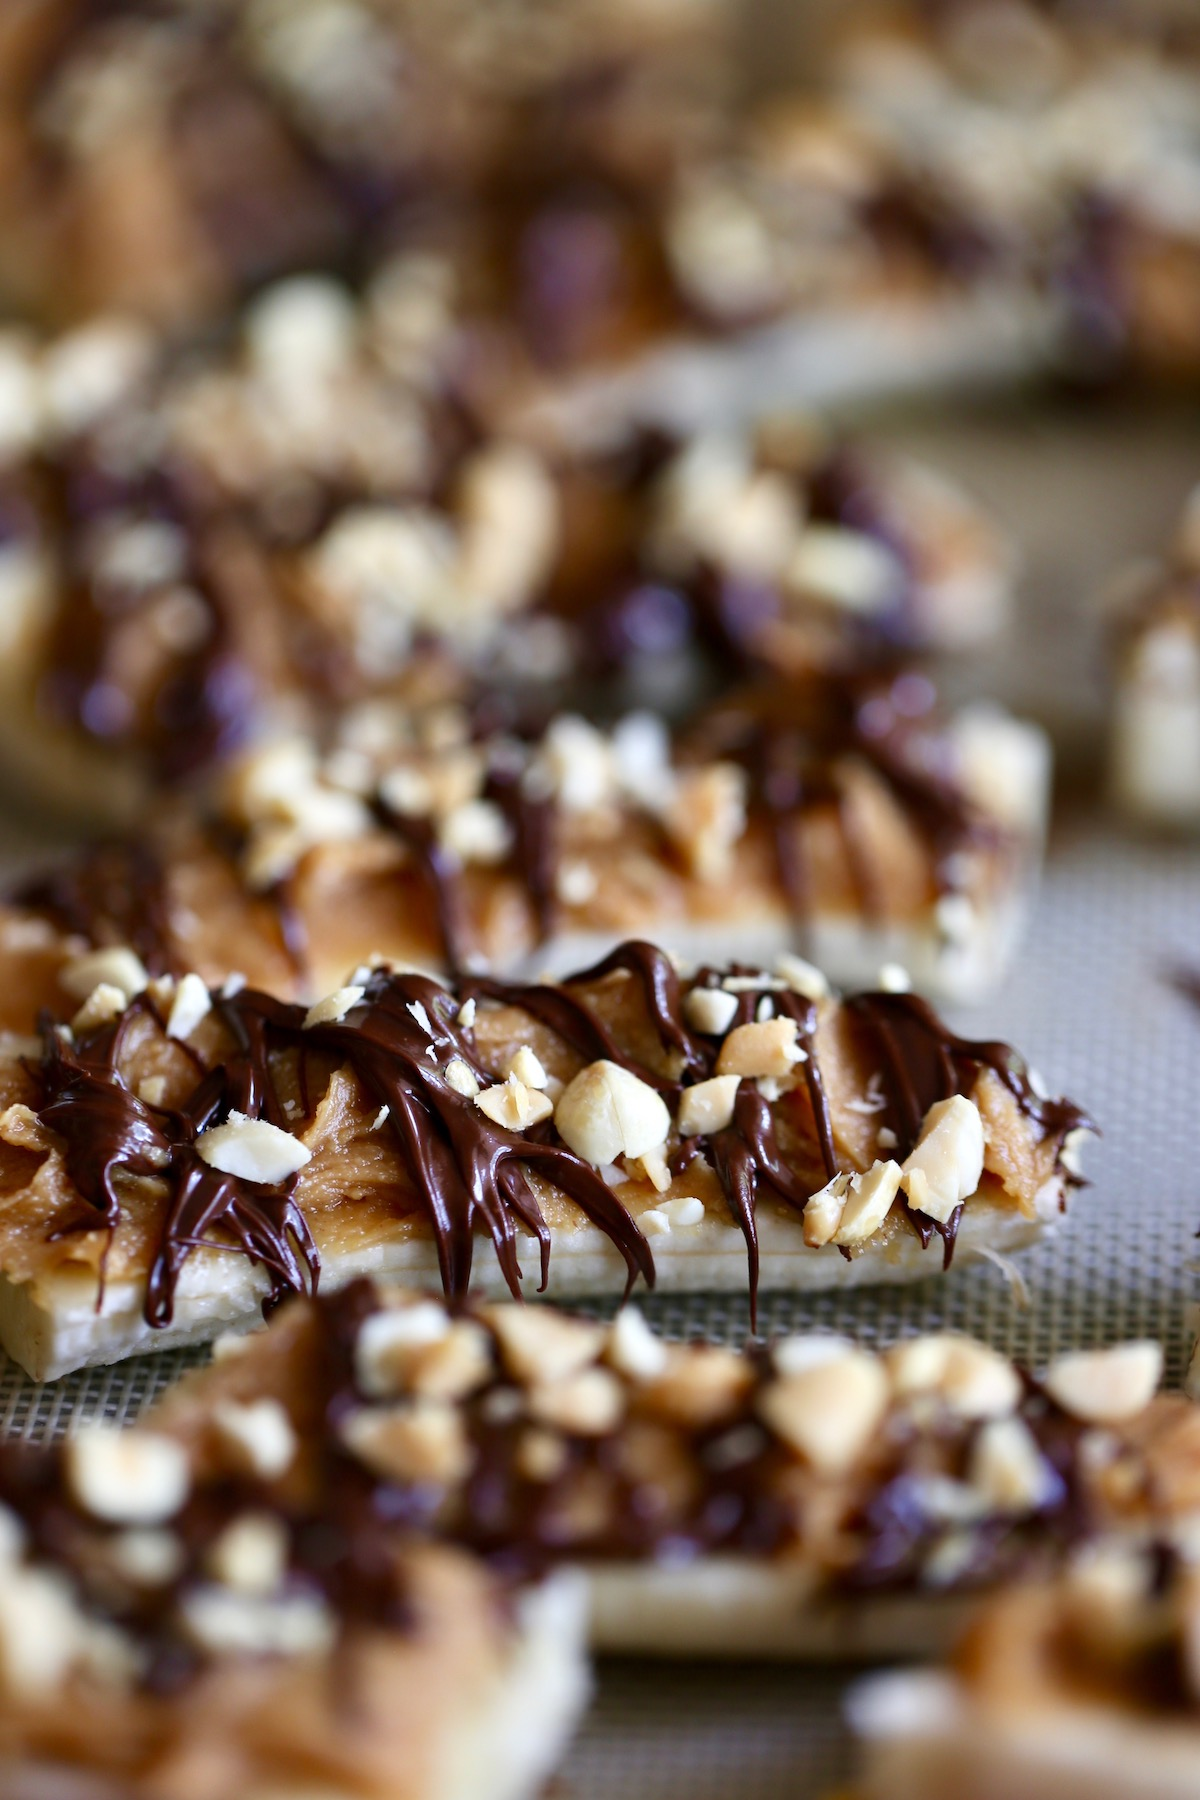 banana slices topped with peanut butter, melted chocolate and salted roasted peanuts